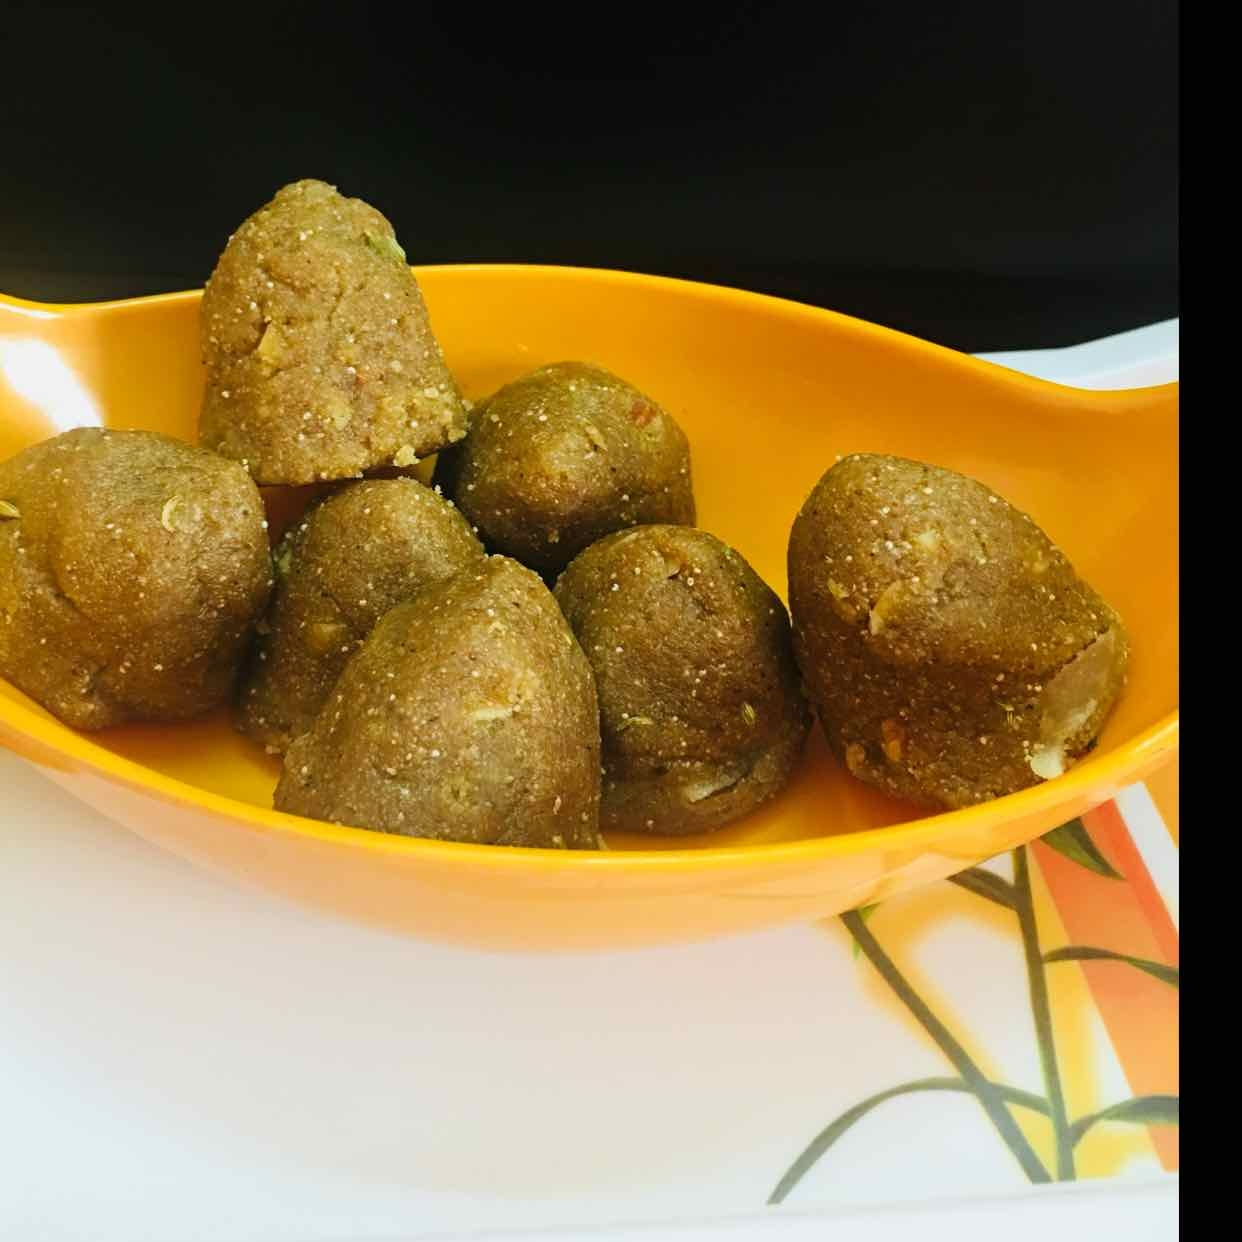 How to make Jaggery laddoo